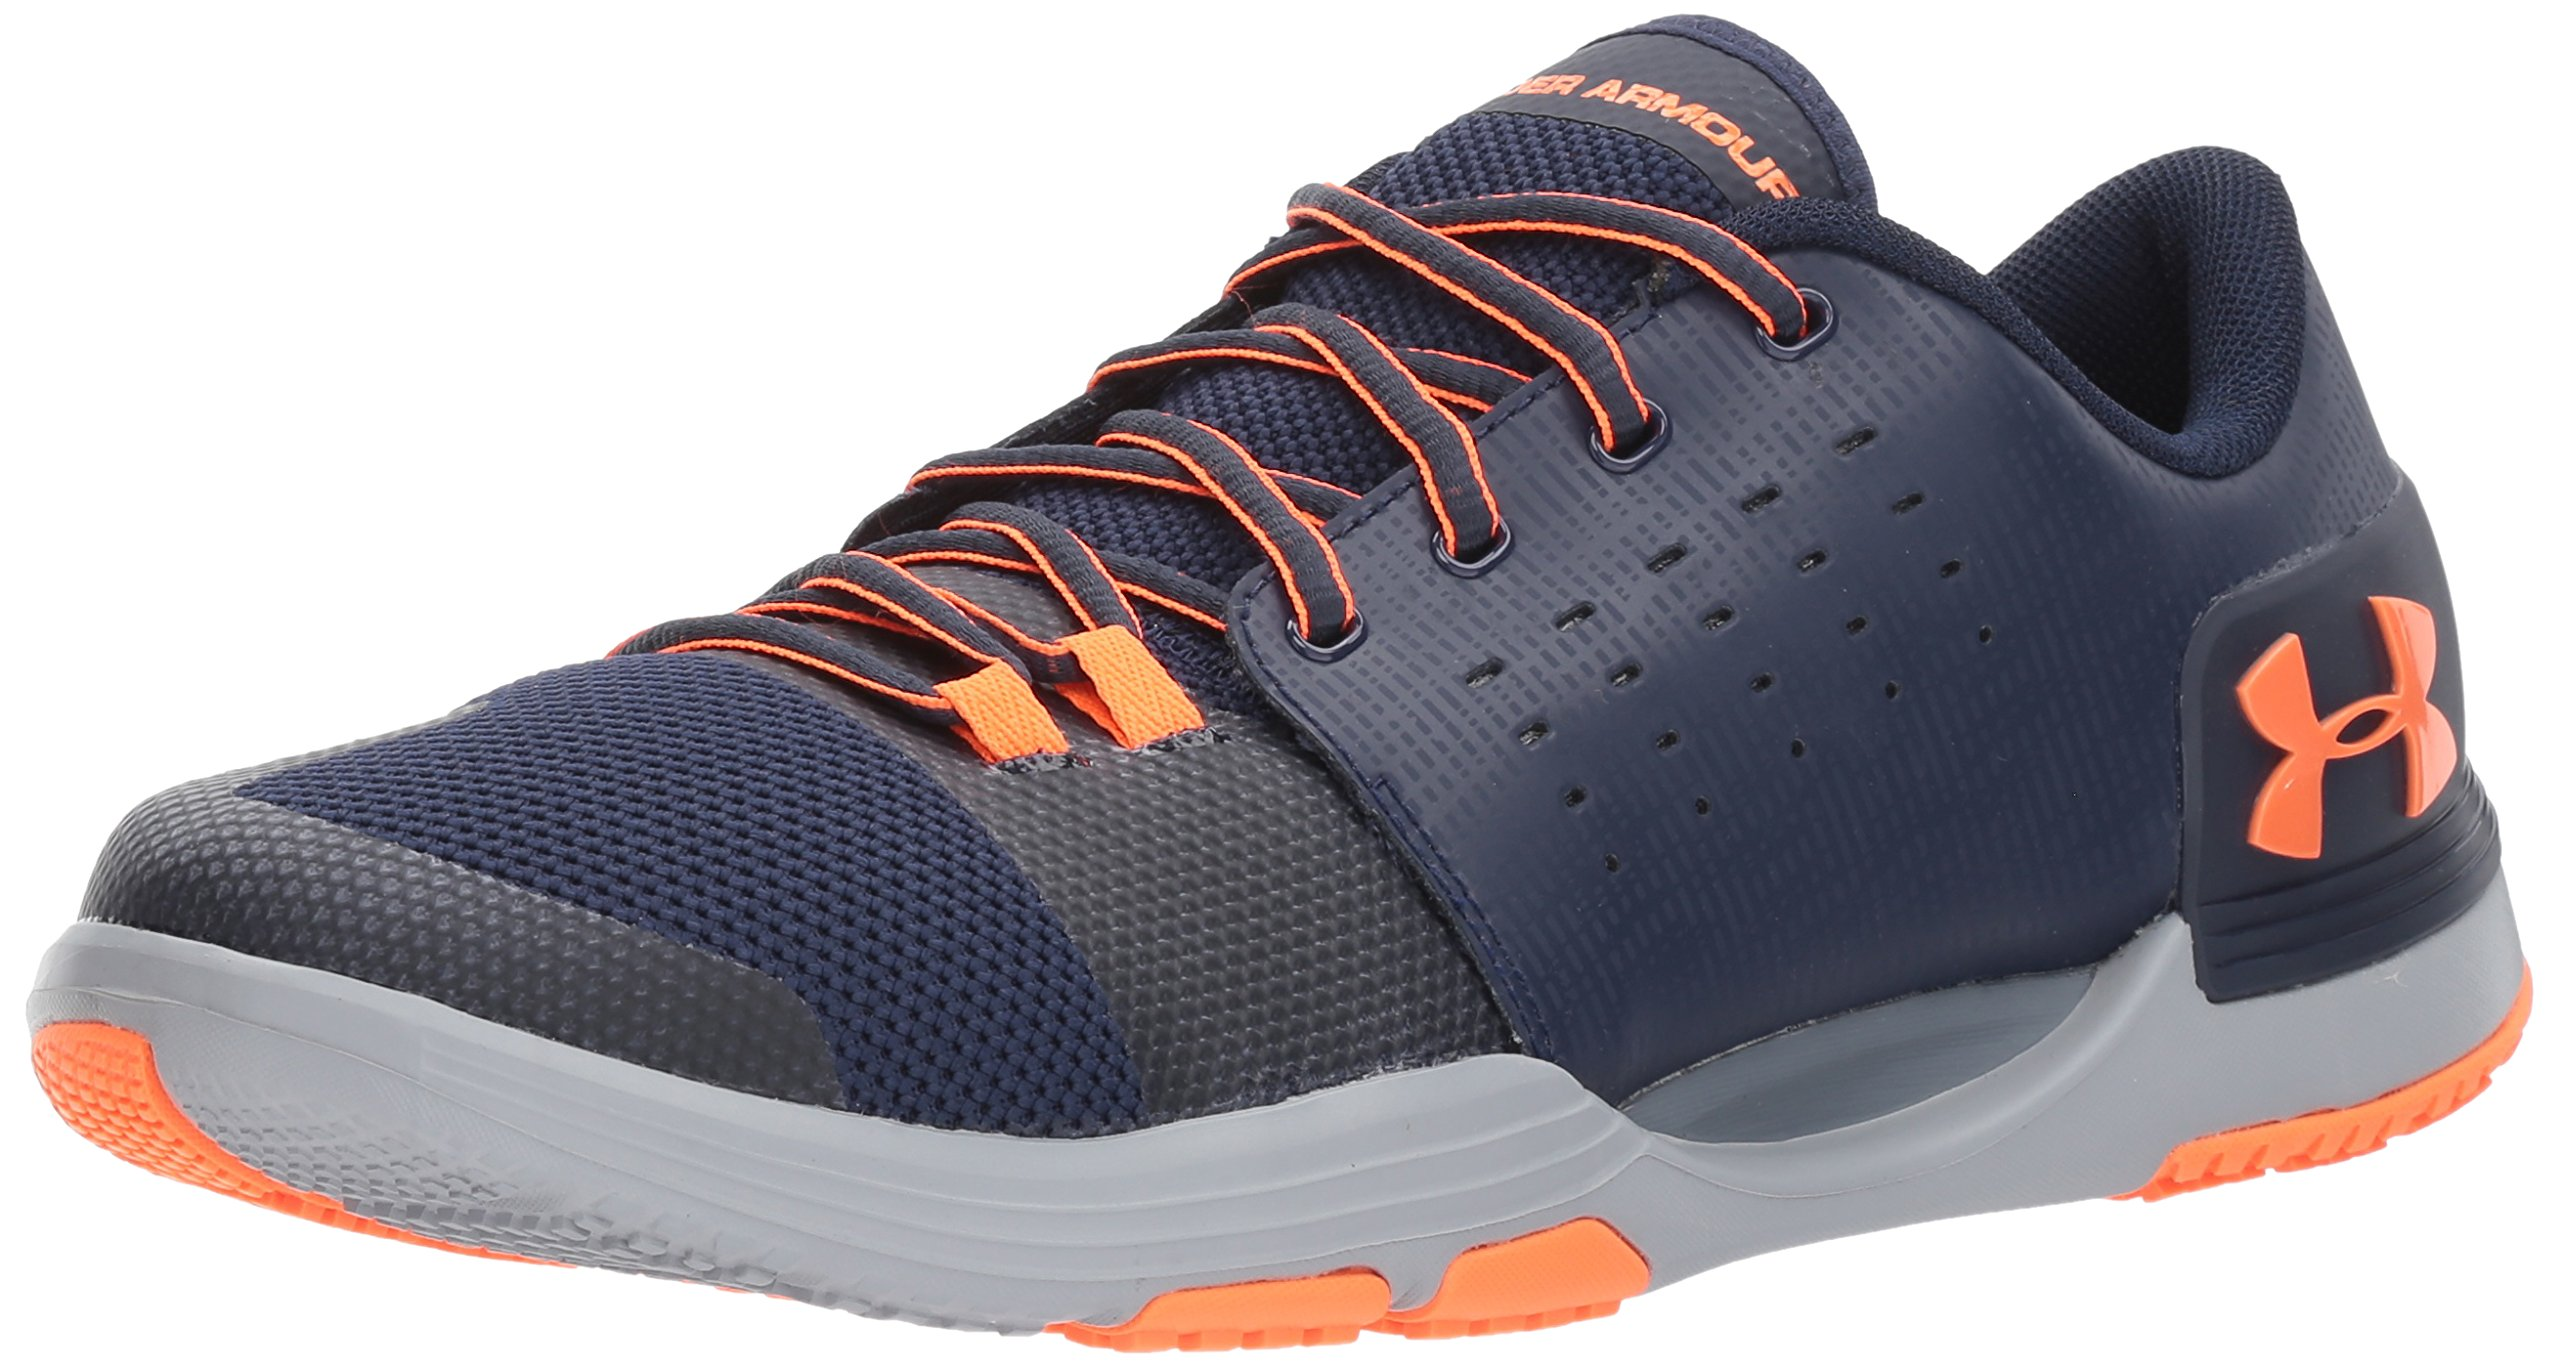 Under Armour Men's Limitless 3 Sneaker, Midnight Navy (400)/Overcast Gray, 11.5